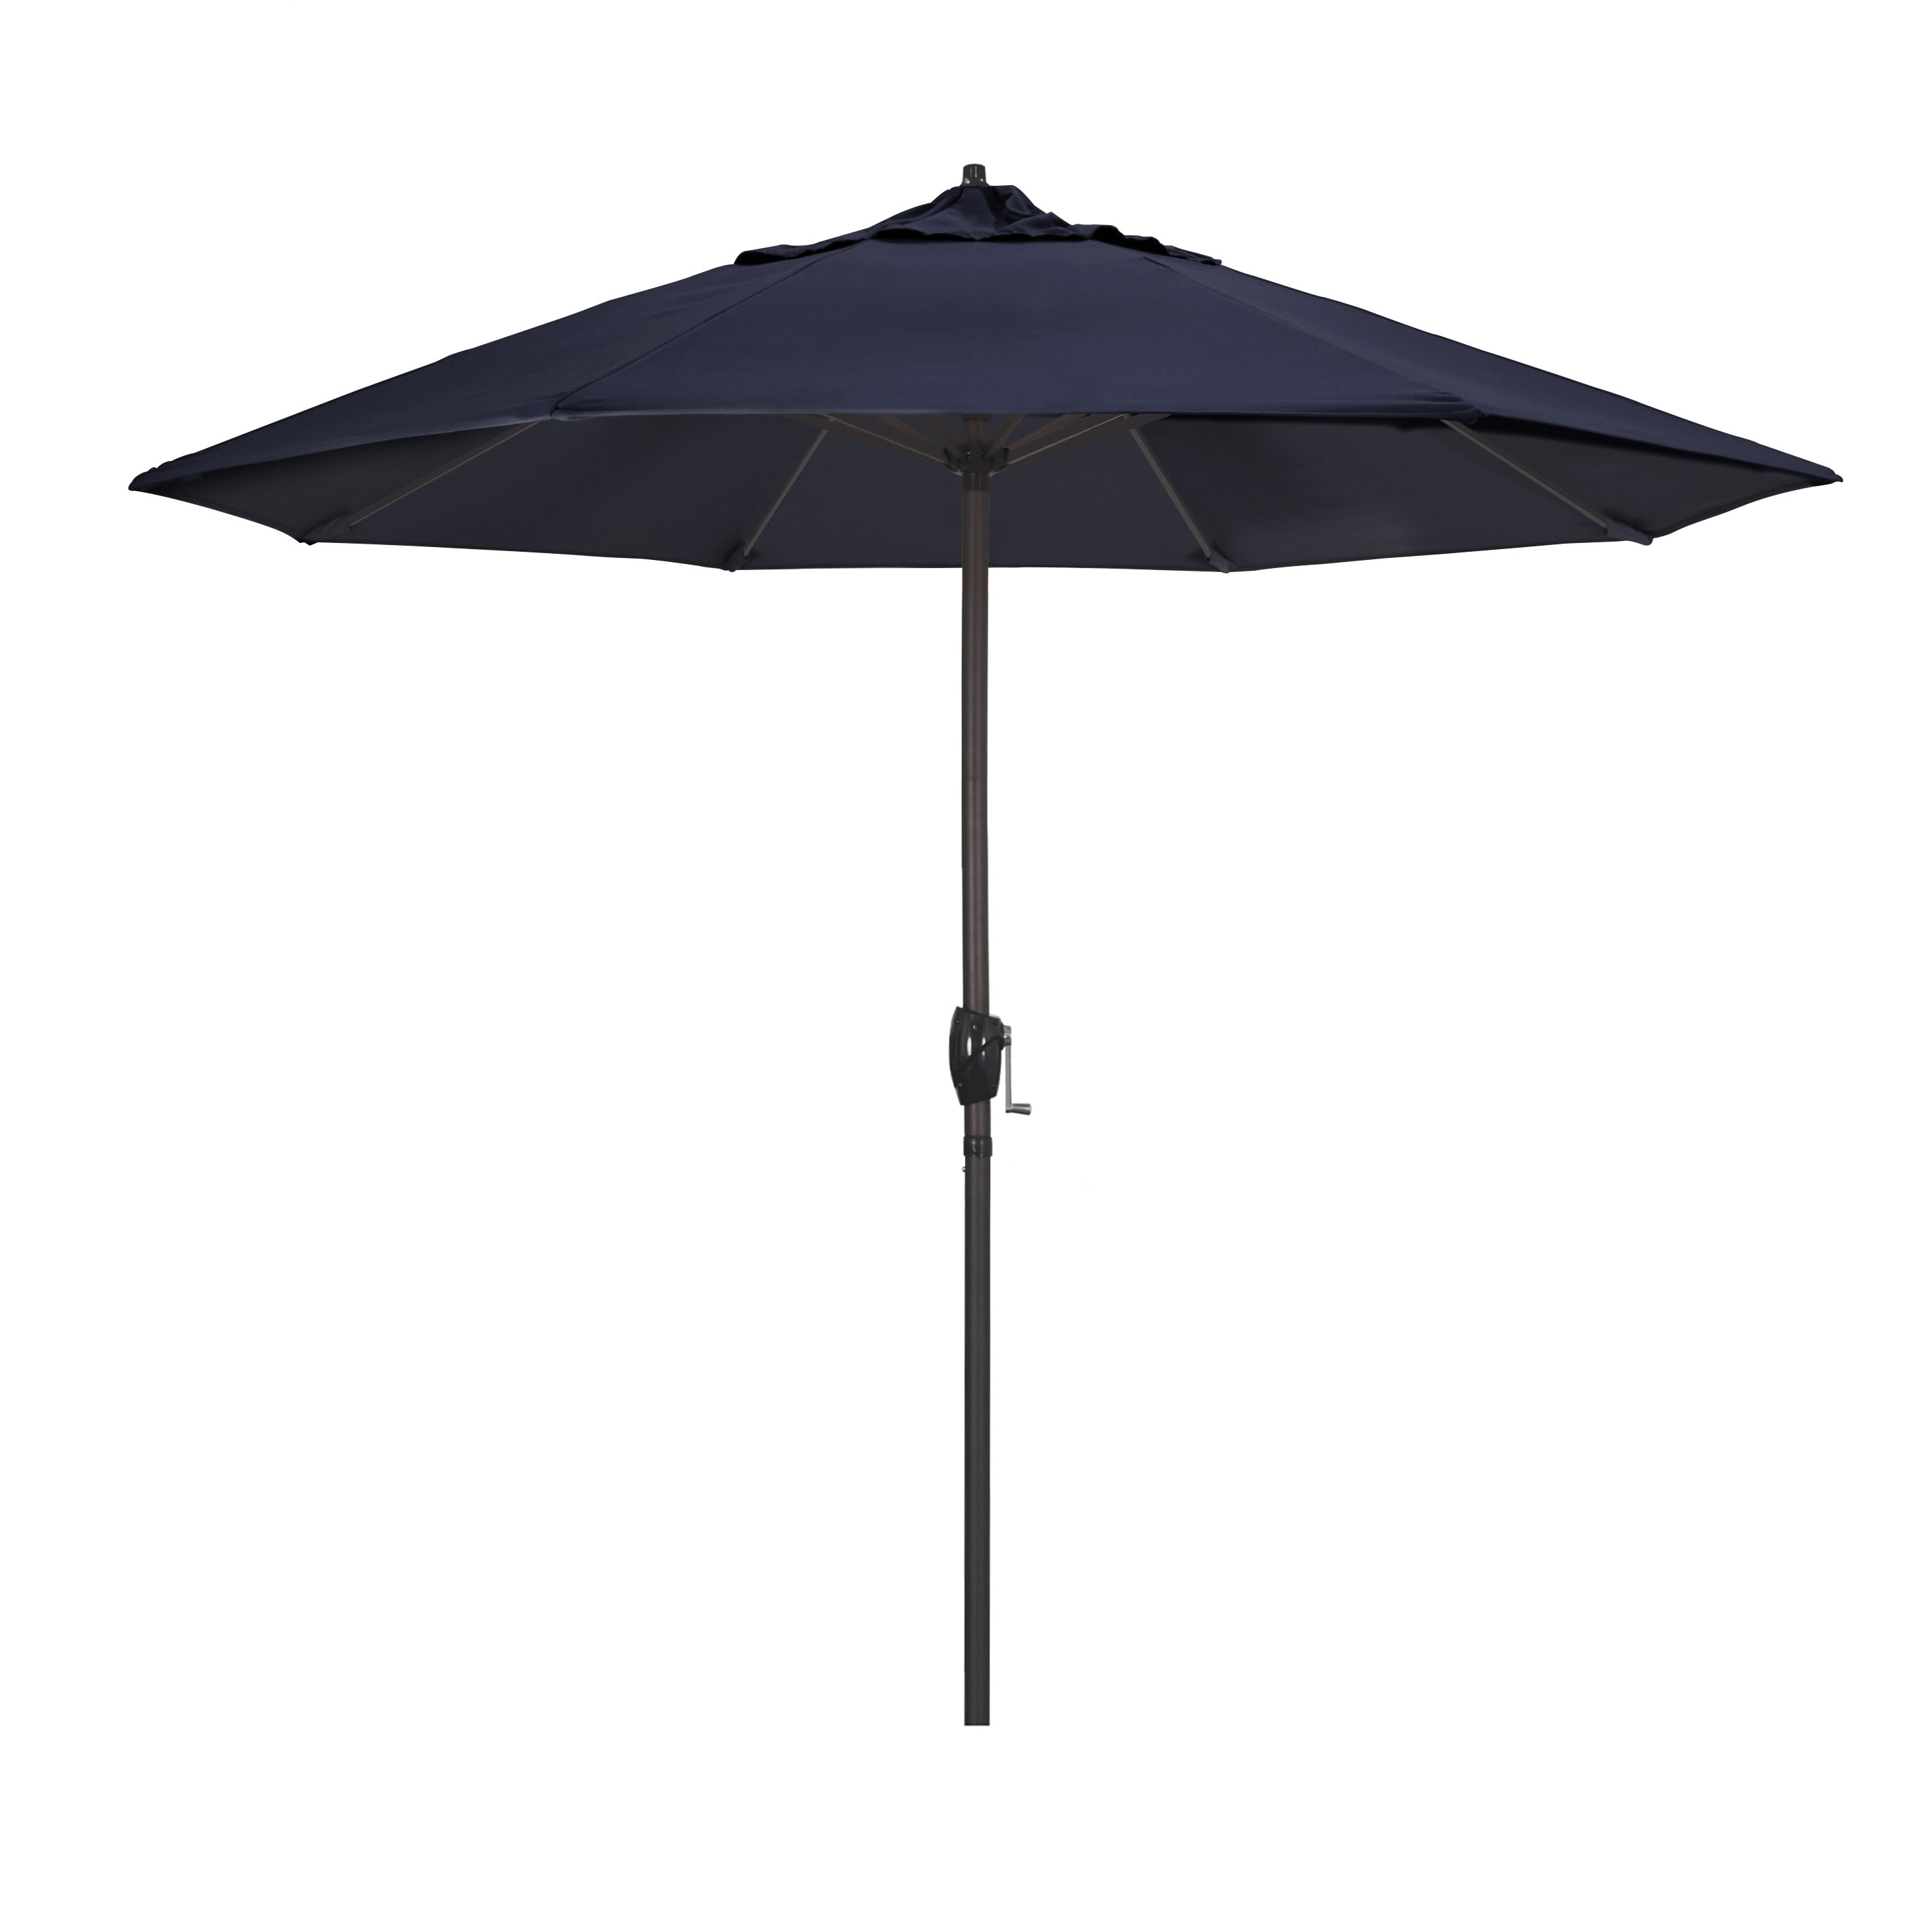 Newest California Umbrella (View 10 of 20)